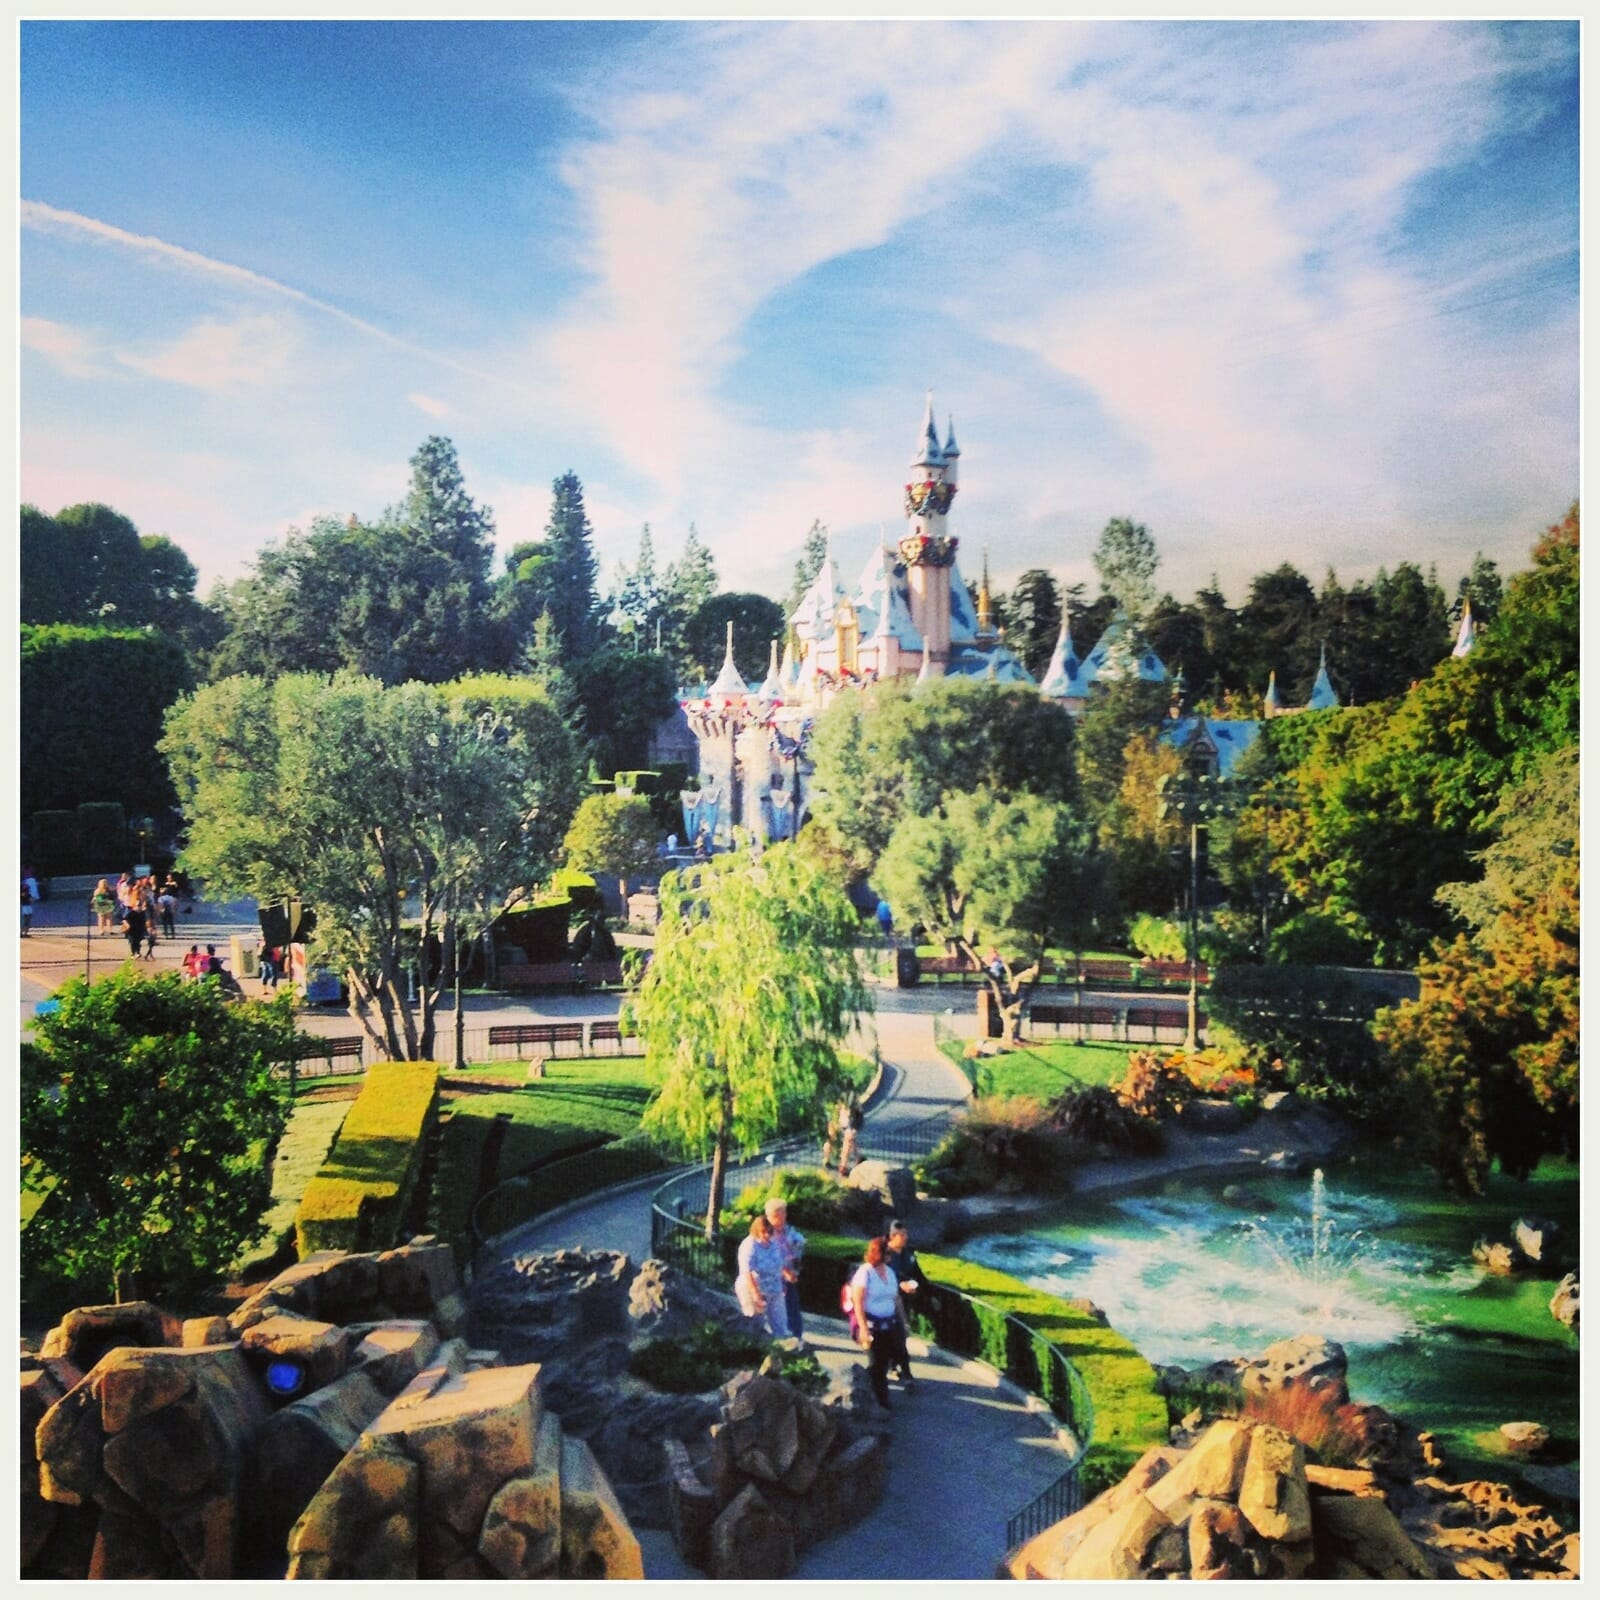 Planning A Trip To Disneyland With Toddlers